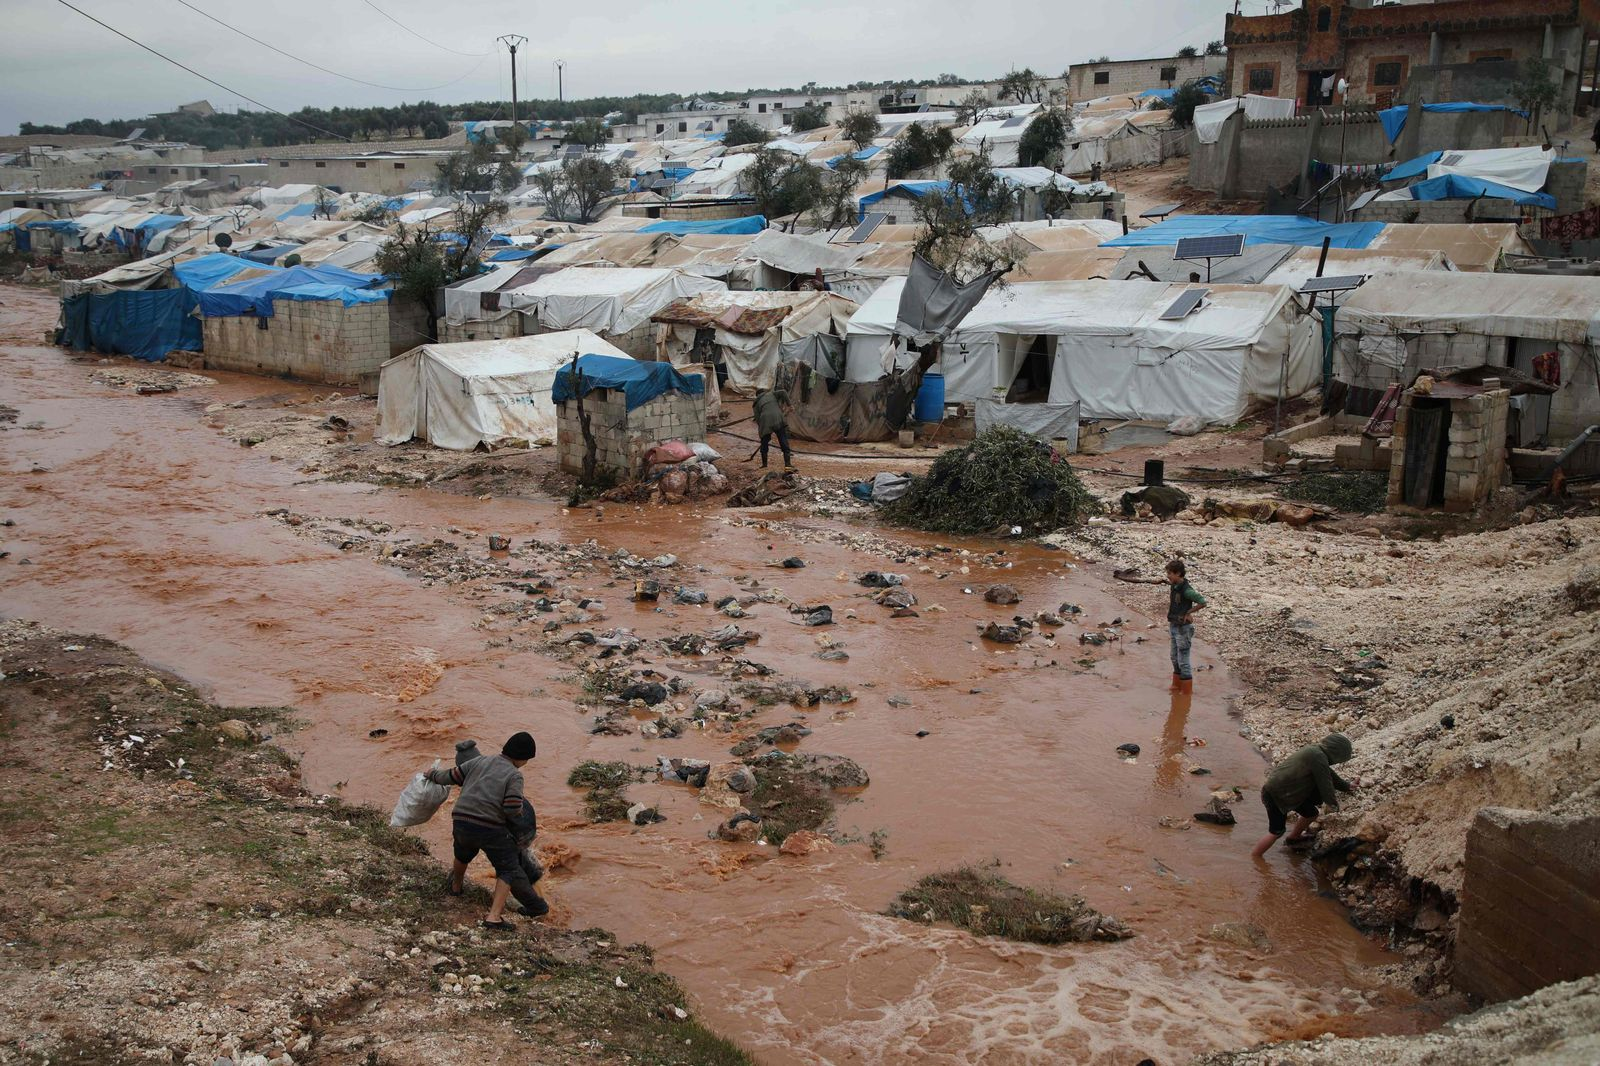 SYRIA-CONFLICT-DISPLACED